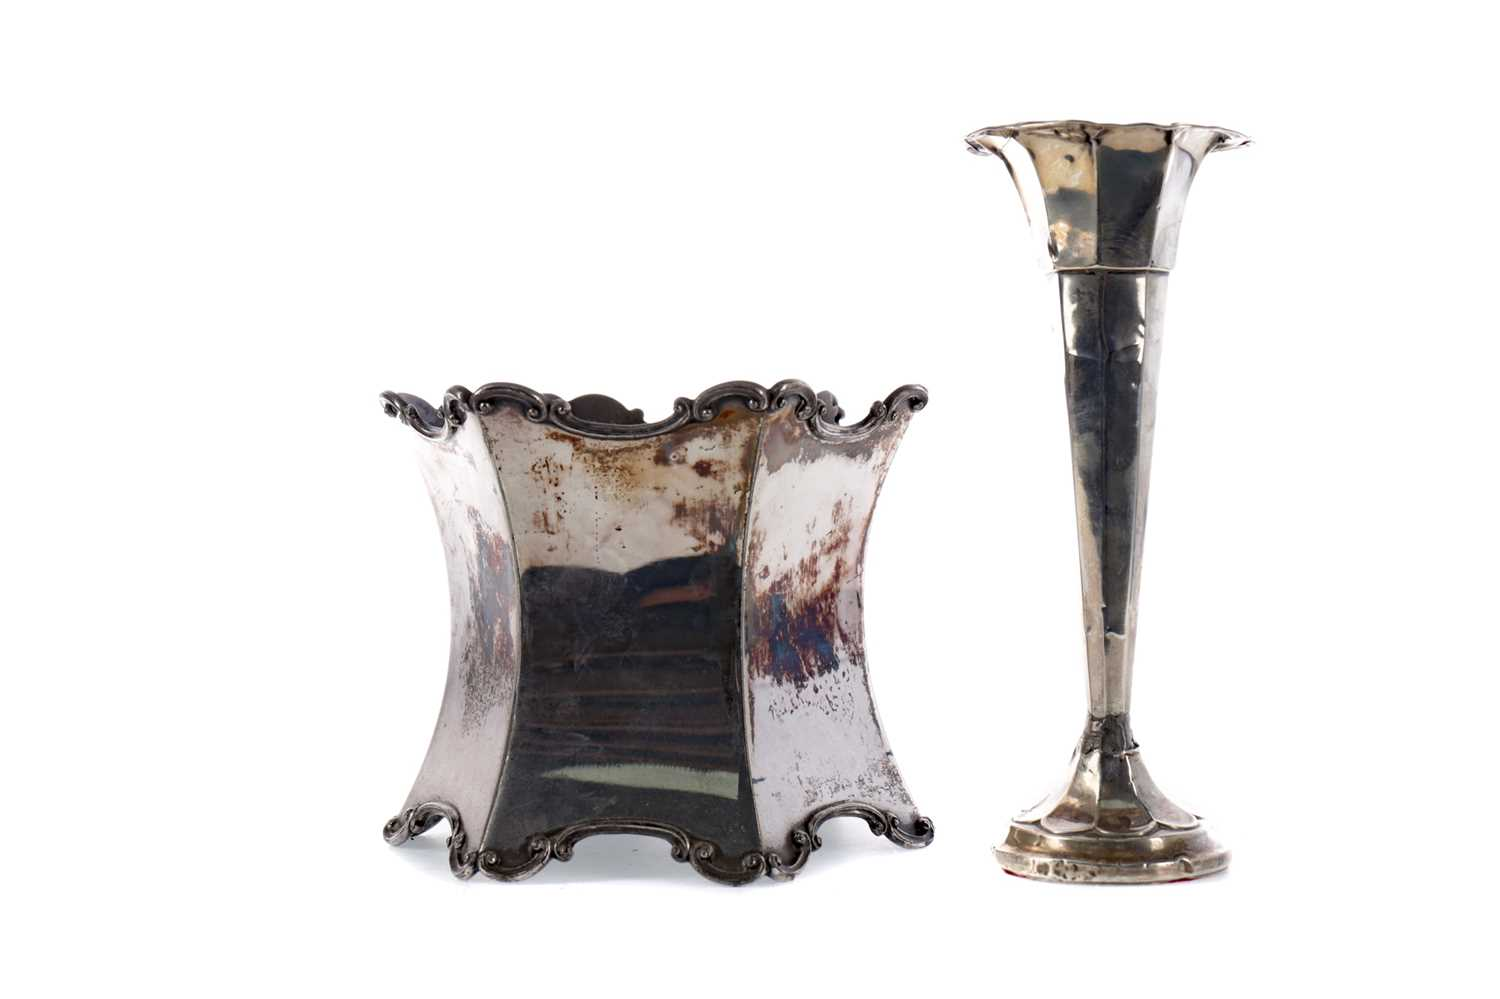 Lot 92 - A GEORGE V SILVER TRUMPET VASE, ALONG WITH A PLANTER